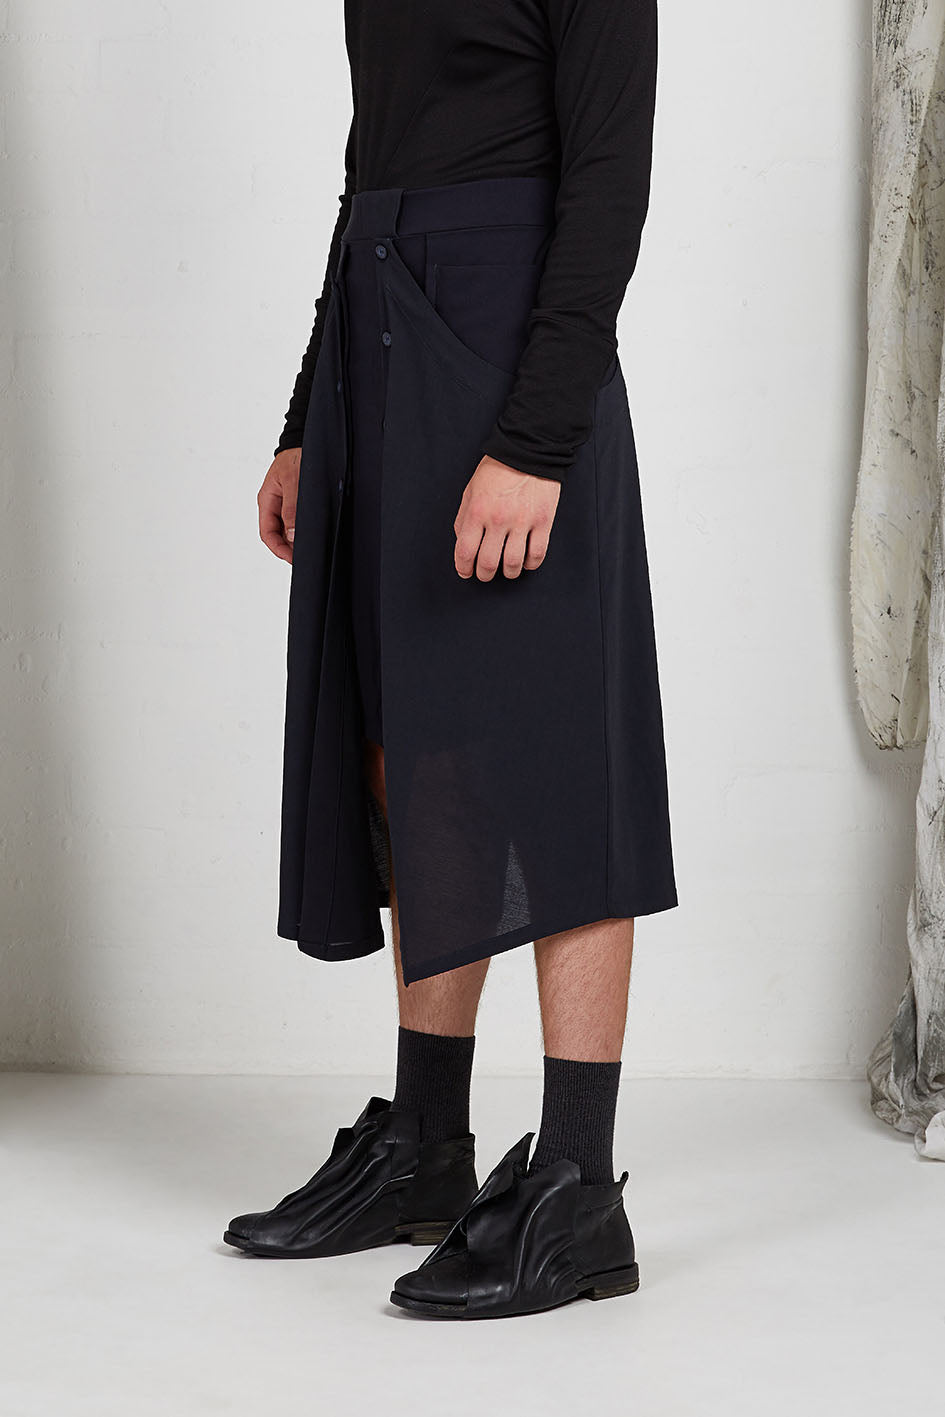 Tailored Menswear Unisex Skirt with Button off Drape Panels in Italian Wool Crepe Suiting